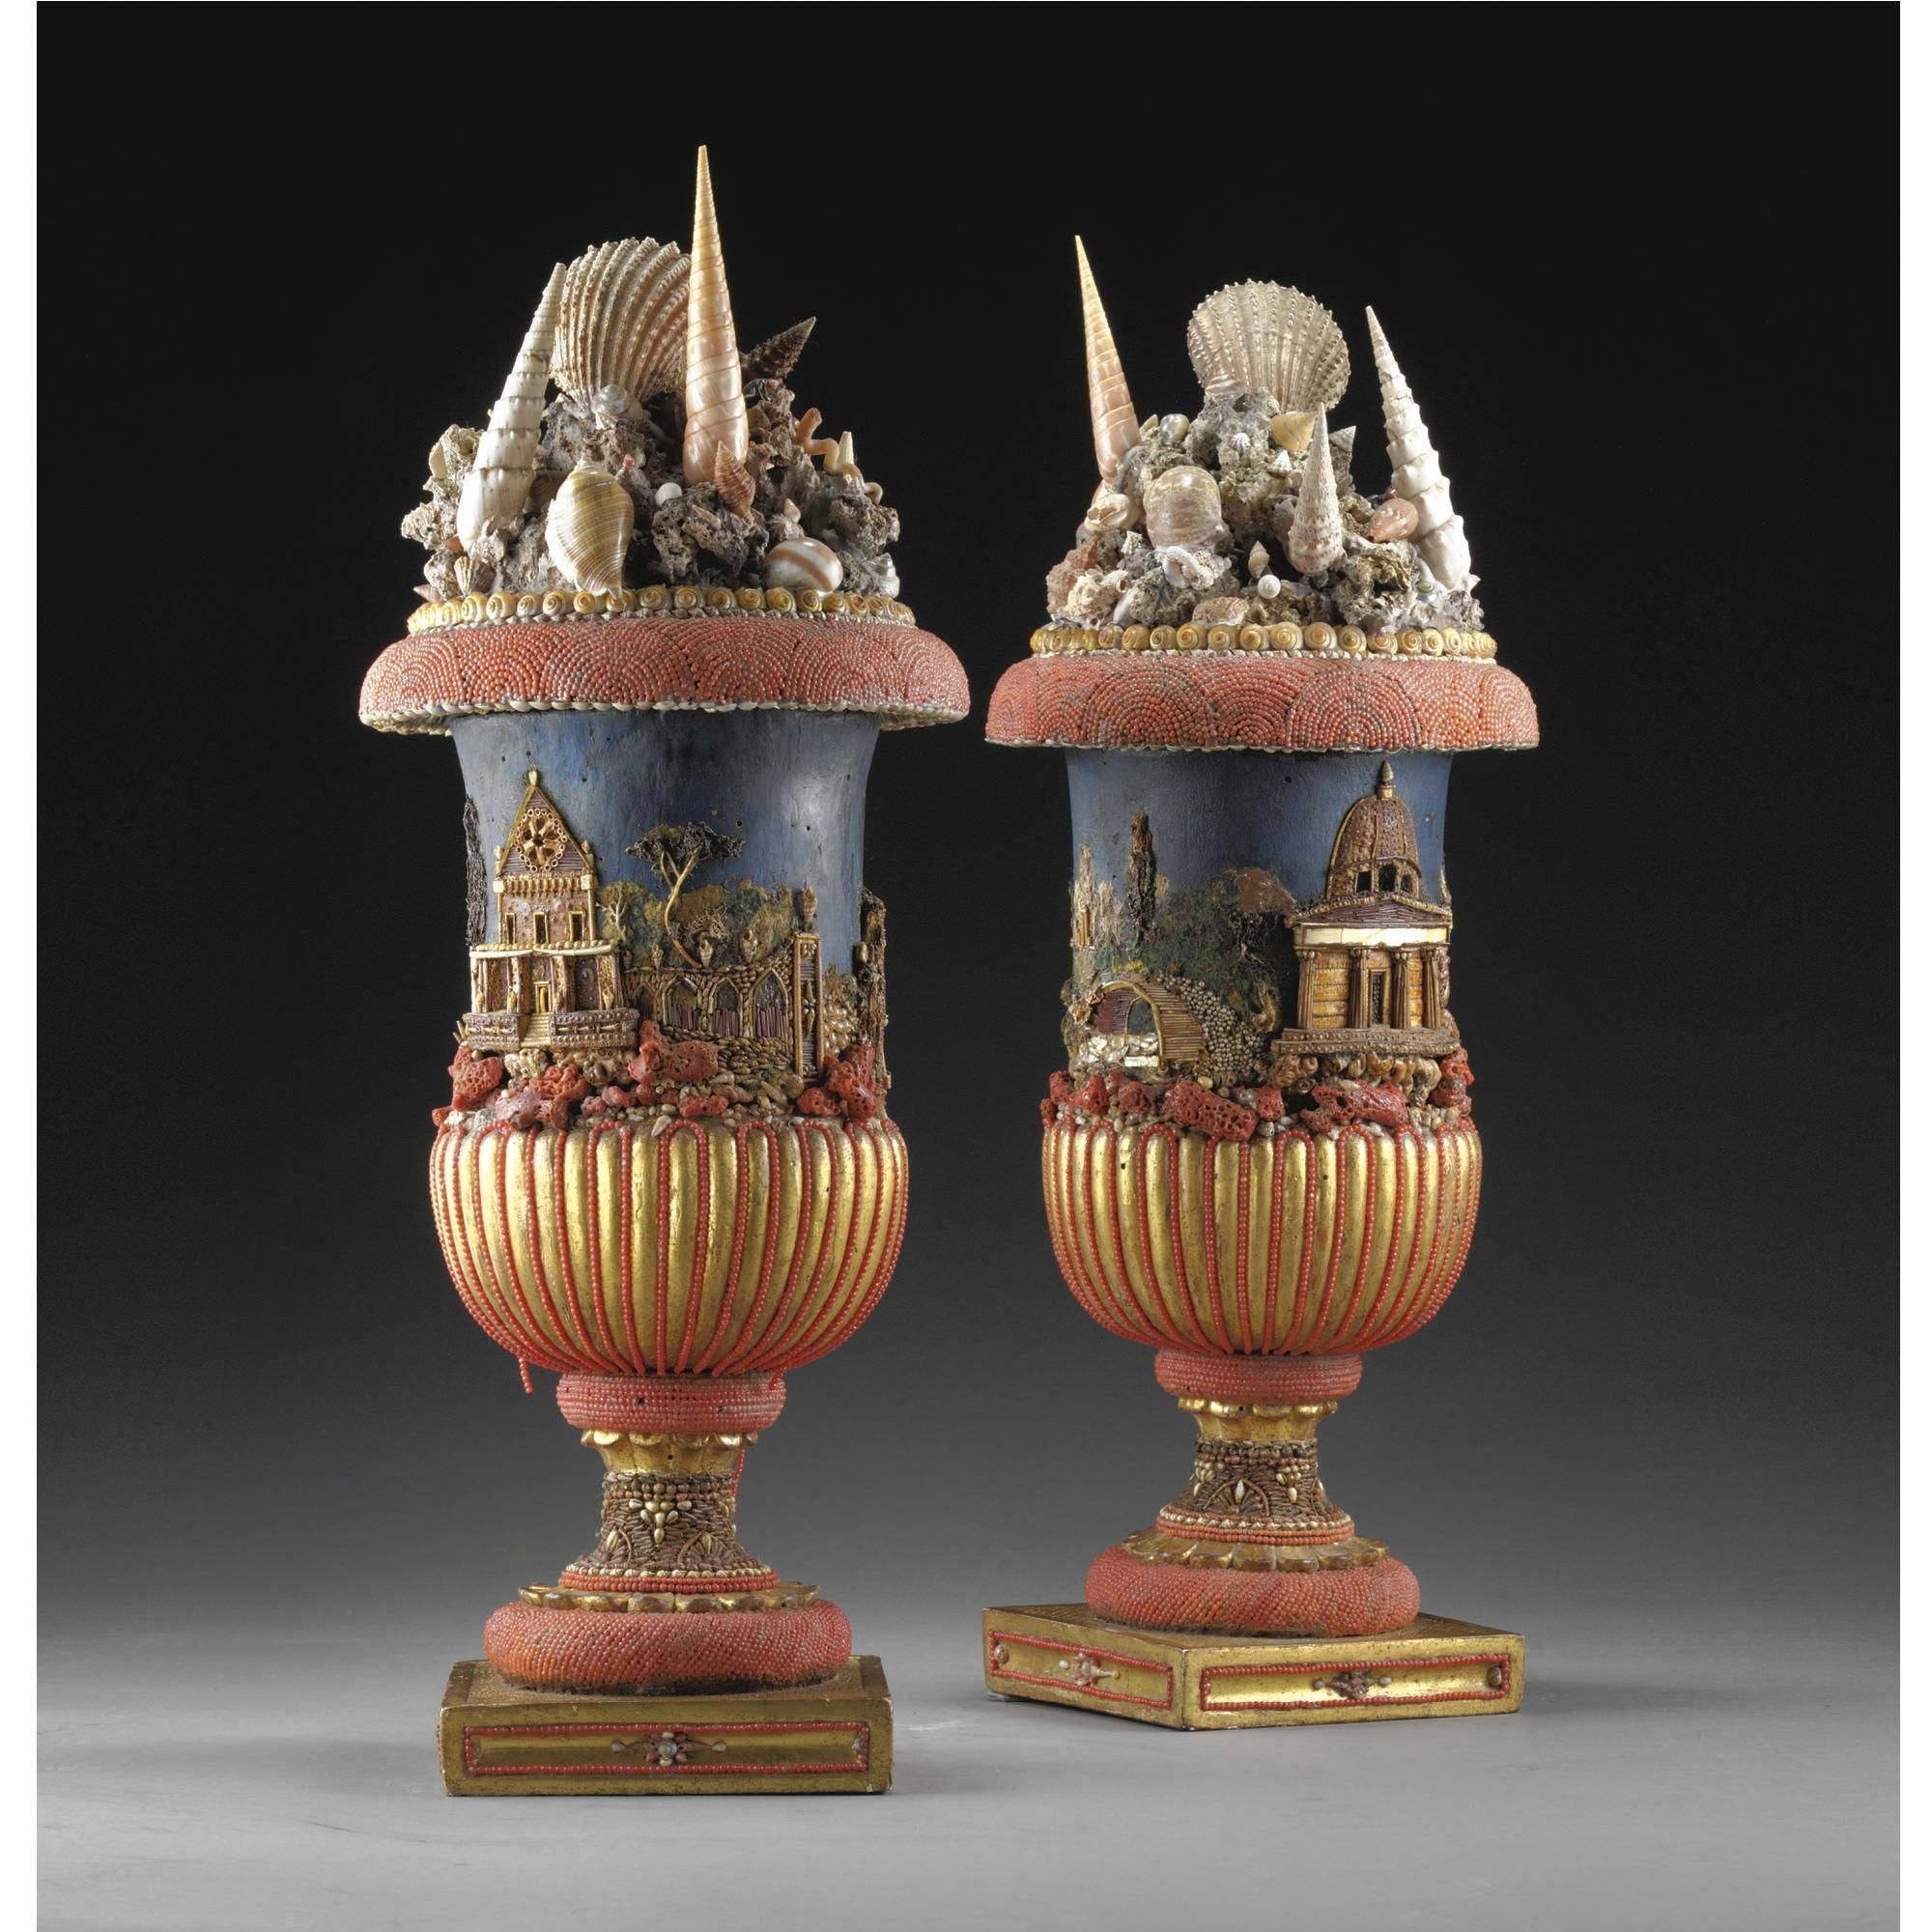 Italian, Sicily, 18th century PAIR OF COVERED VASES coral, gilt bronze and shells.